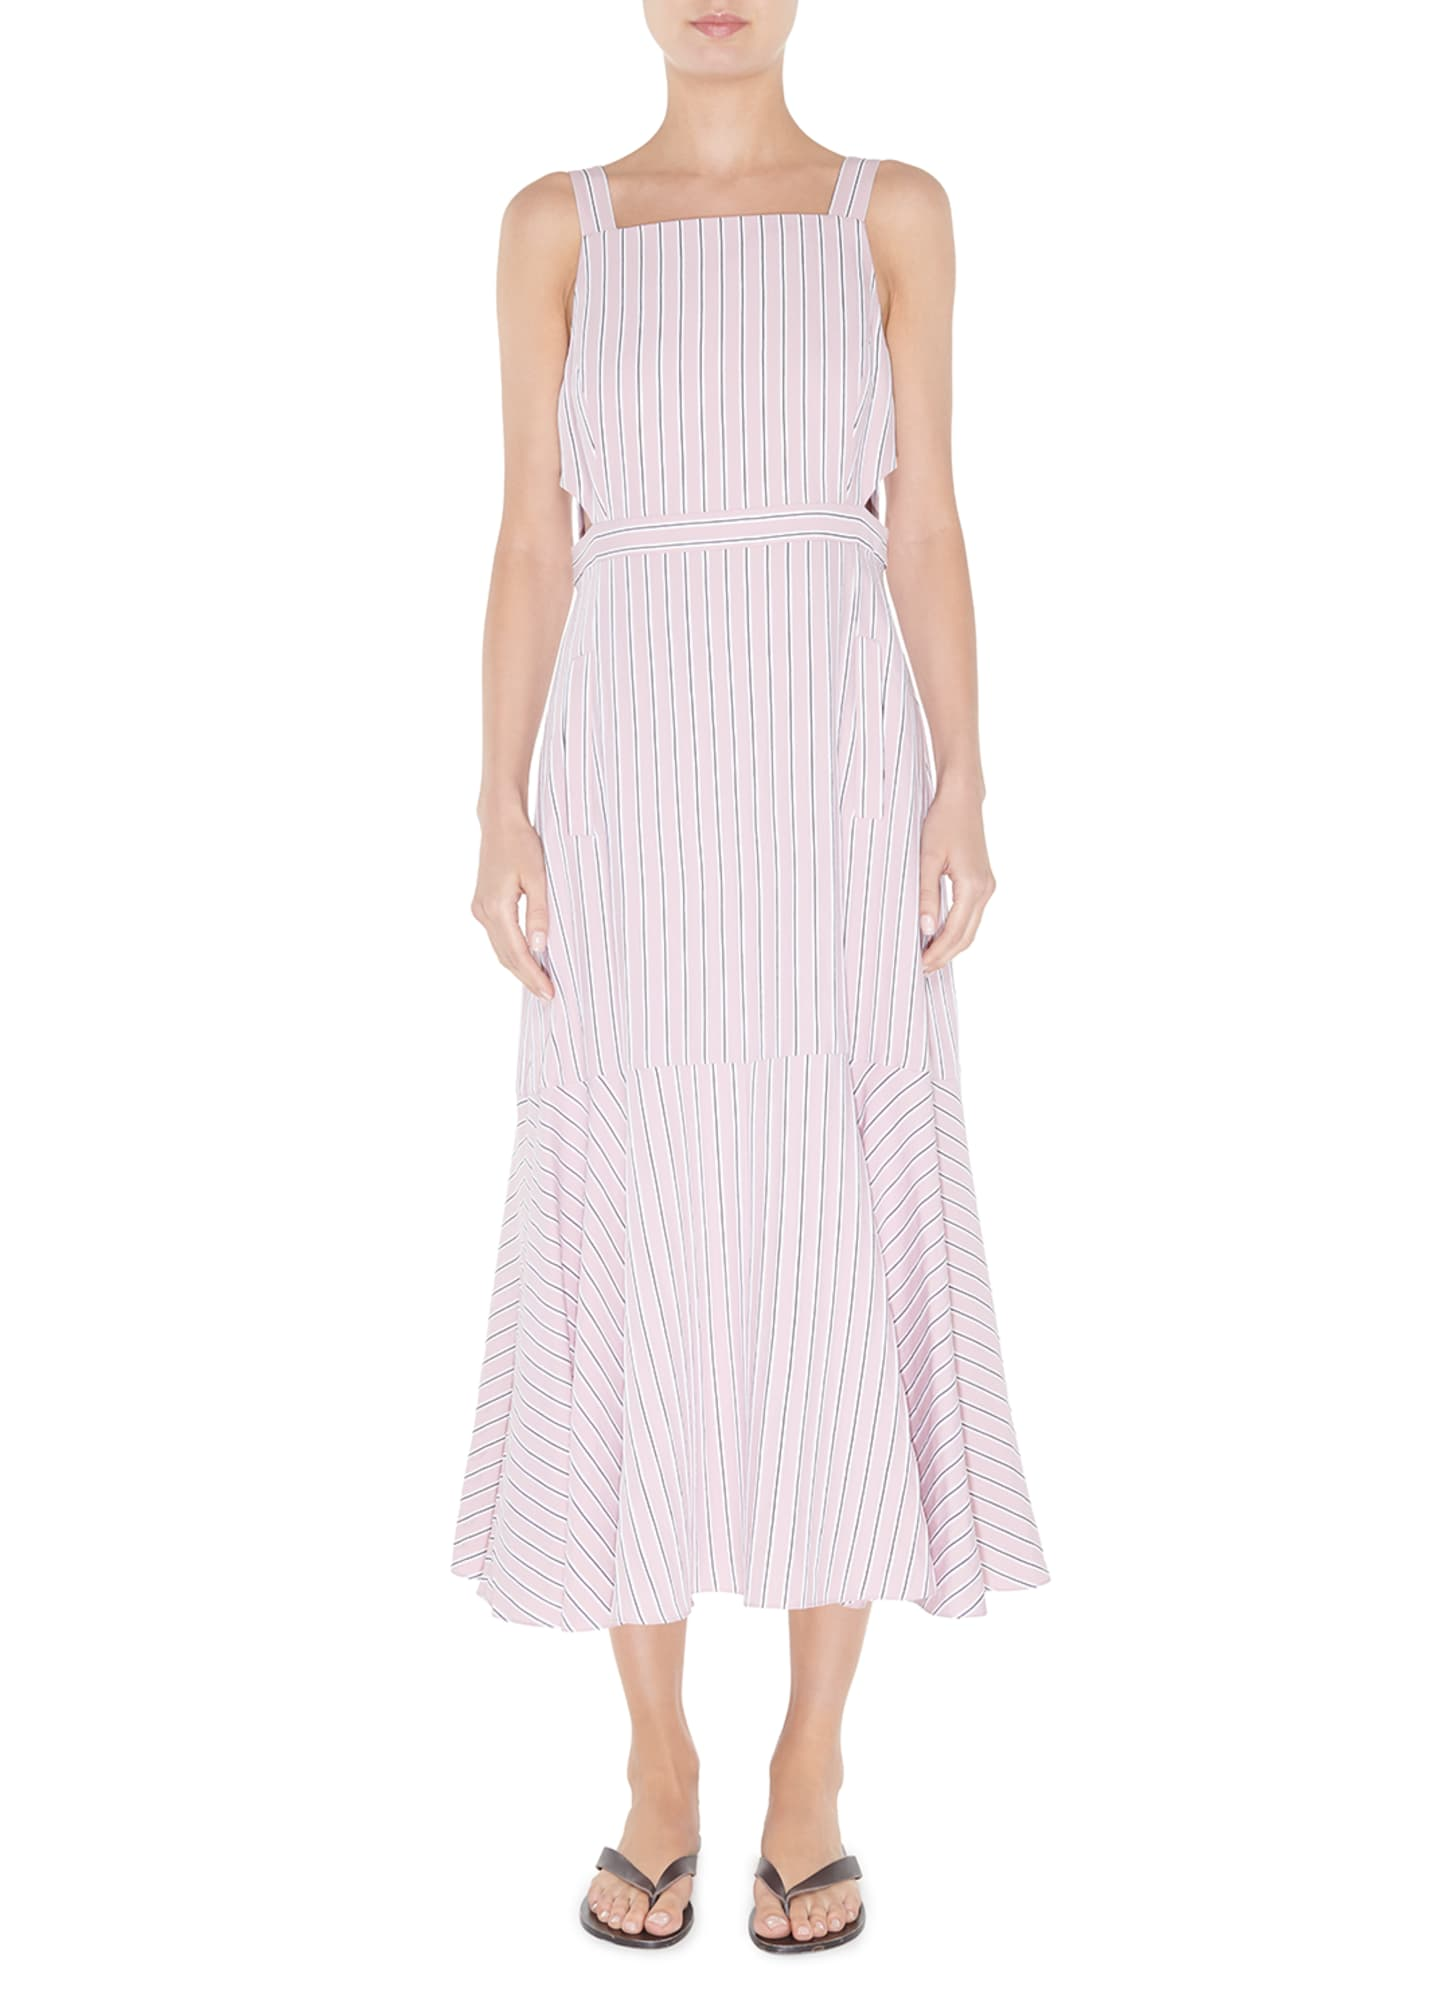 Tibi Striped Viscose Twill Strappy Flared Dress